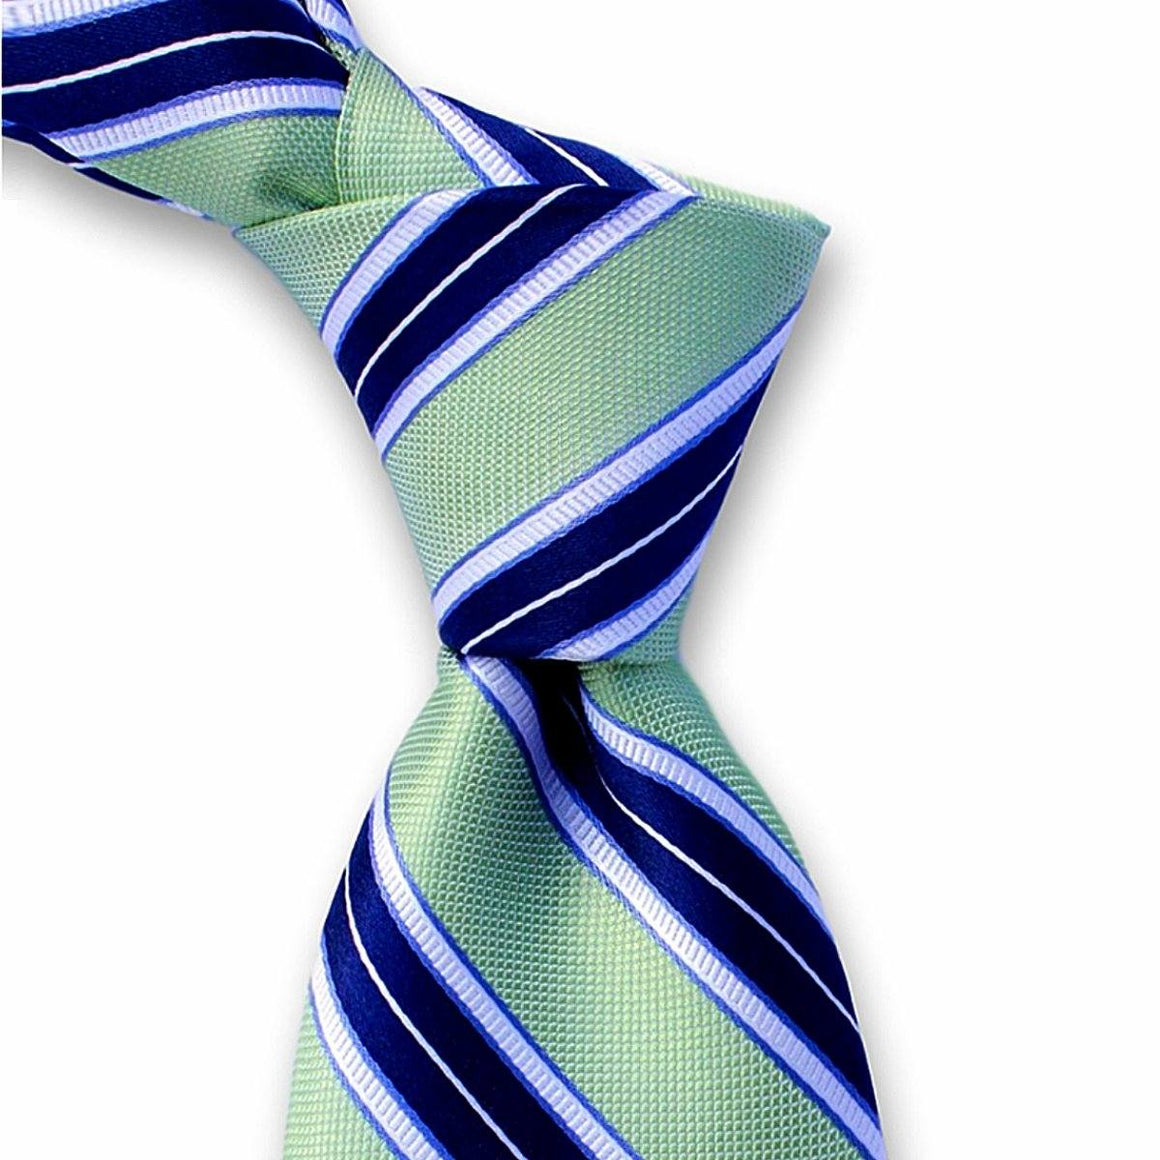 Camden - TieThis Neckwear and Accessories and TieThis.com